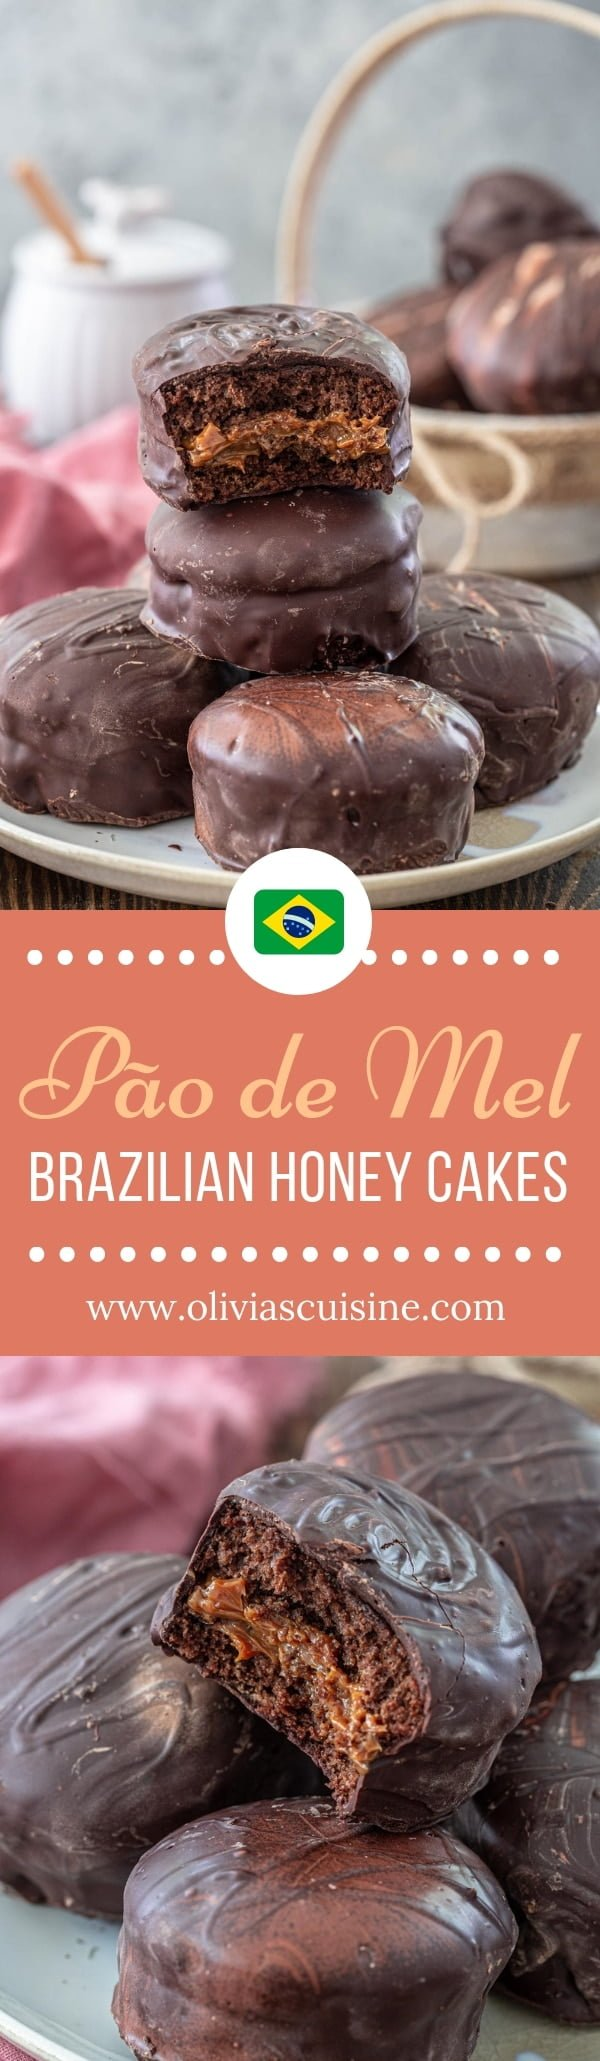 Brazilian Honey Cakes (Pão de Mel) | www.oliviascuisine.com | These out-of-this-world Brazilian Honey Cakes, aka Pão de Mel, are everything your sweet tooth could ask for. Spiced chocolate honey cakes, filled with dulce de leche and covered in chocolate! I can't think of anything better than that! #paodemel #brazilianfood #chocolate #dulcedeleche #cake #cakes #brazilian